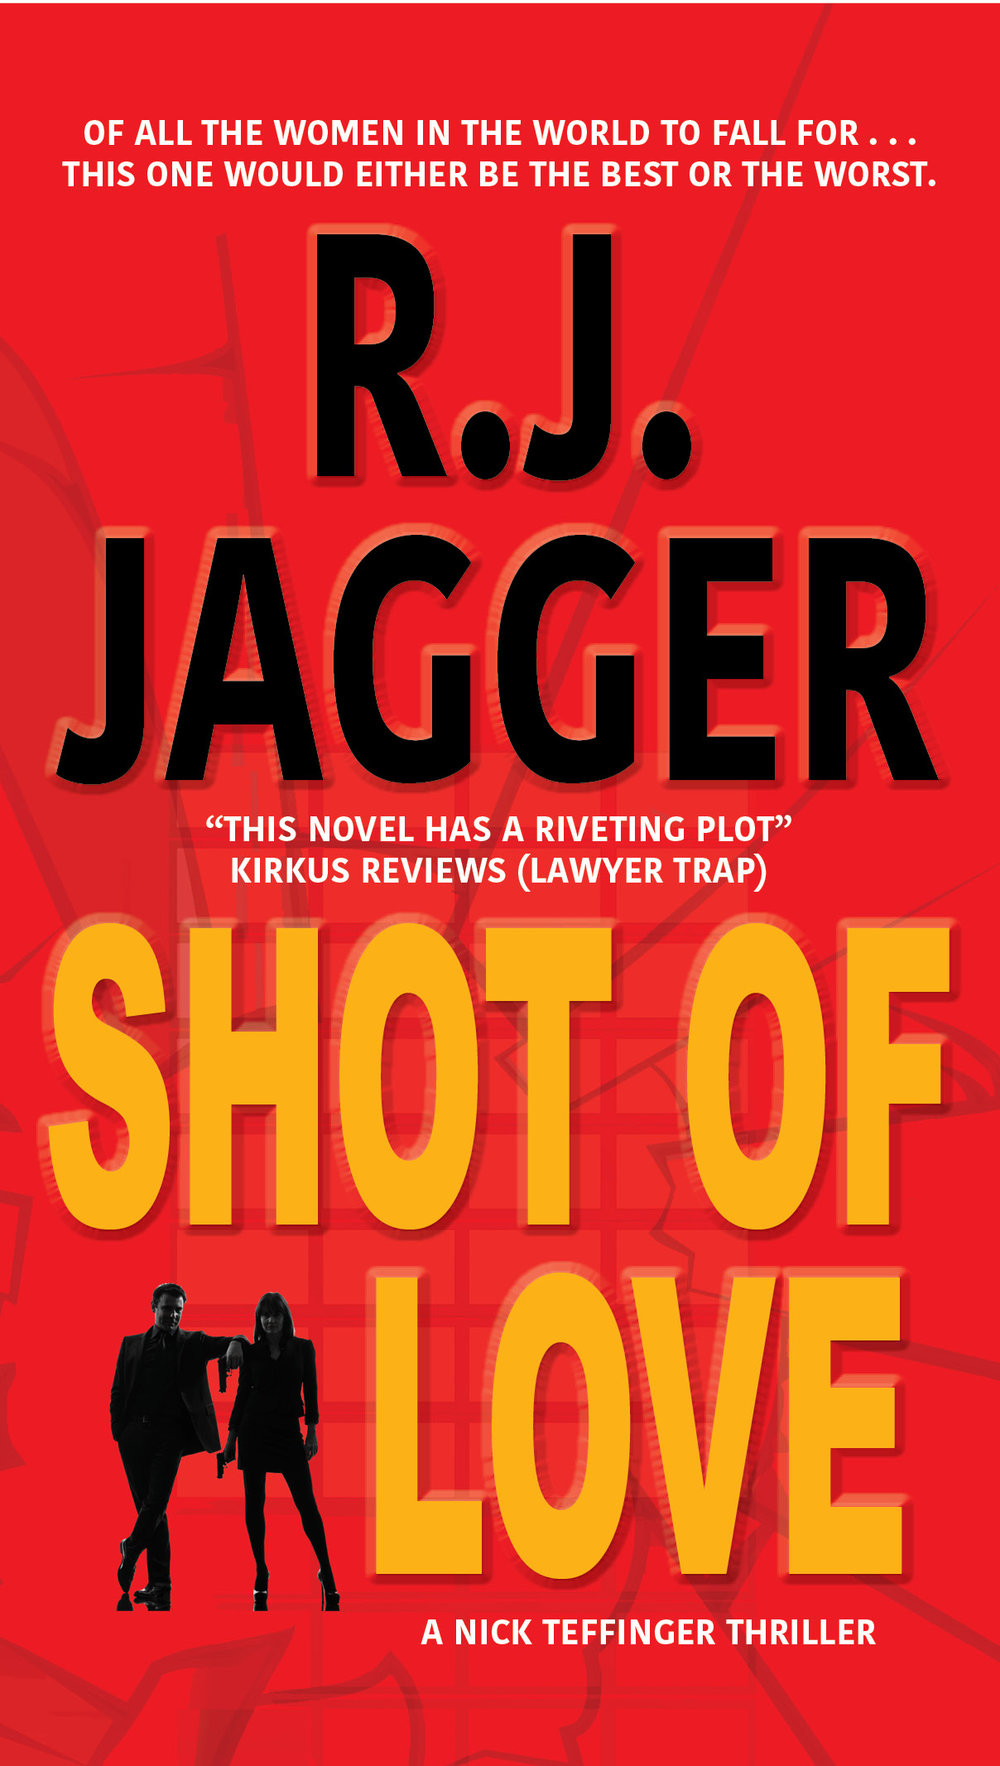 SHOT OF LOVE - In his riskiest and most personal case yet, Denver homicide detective Nick Teffinger crosses paths with an edgy little beauty who is either a killer or about to be killed, or both. Either way, she's on the run, and now so is he.The audiobook version of this title is being produced by the award-winning Roger Rittner Productions in LA and is being narrated by the incredibly talented TV and film actress Robin Riker (NCIS, Boston Legal, General Hospital, etc.), actor Daniel Chodos (Outbreak, etc.), and others. Sound effects, music and background accents are being added to create a soundtrack of stunning audible delight. This production clears the highest bars for excellence in audiobook creation and is something you will definitely want to experience.Coming October 1, 2018 in hardcover (ISBN 978937888442)  ebook (ISBN 9781937888466) and audiobook. Coming mid-2019 in mass-market paperback (ISBN 9781937888978).Distributed by Ingram.